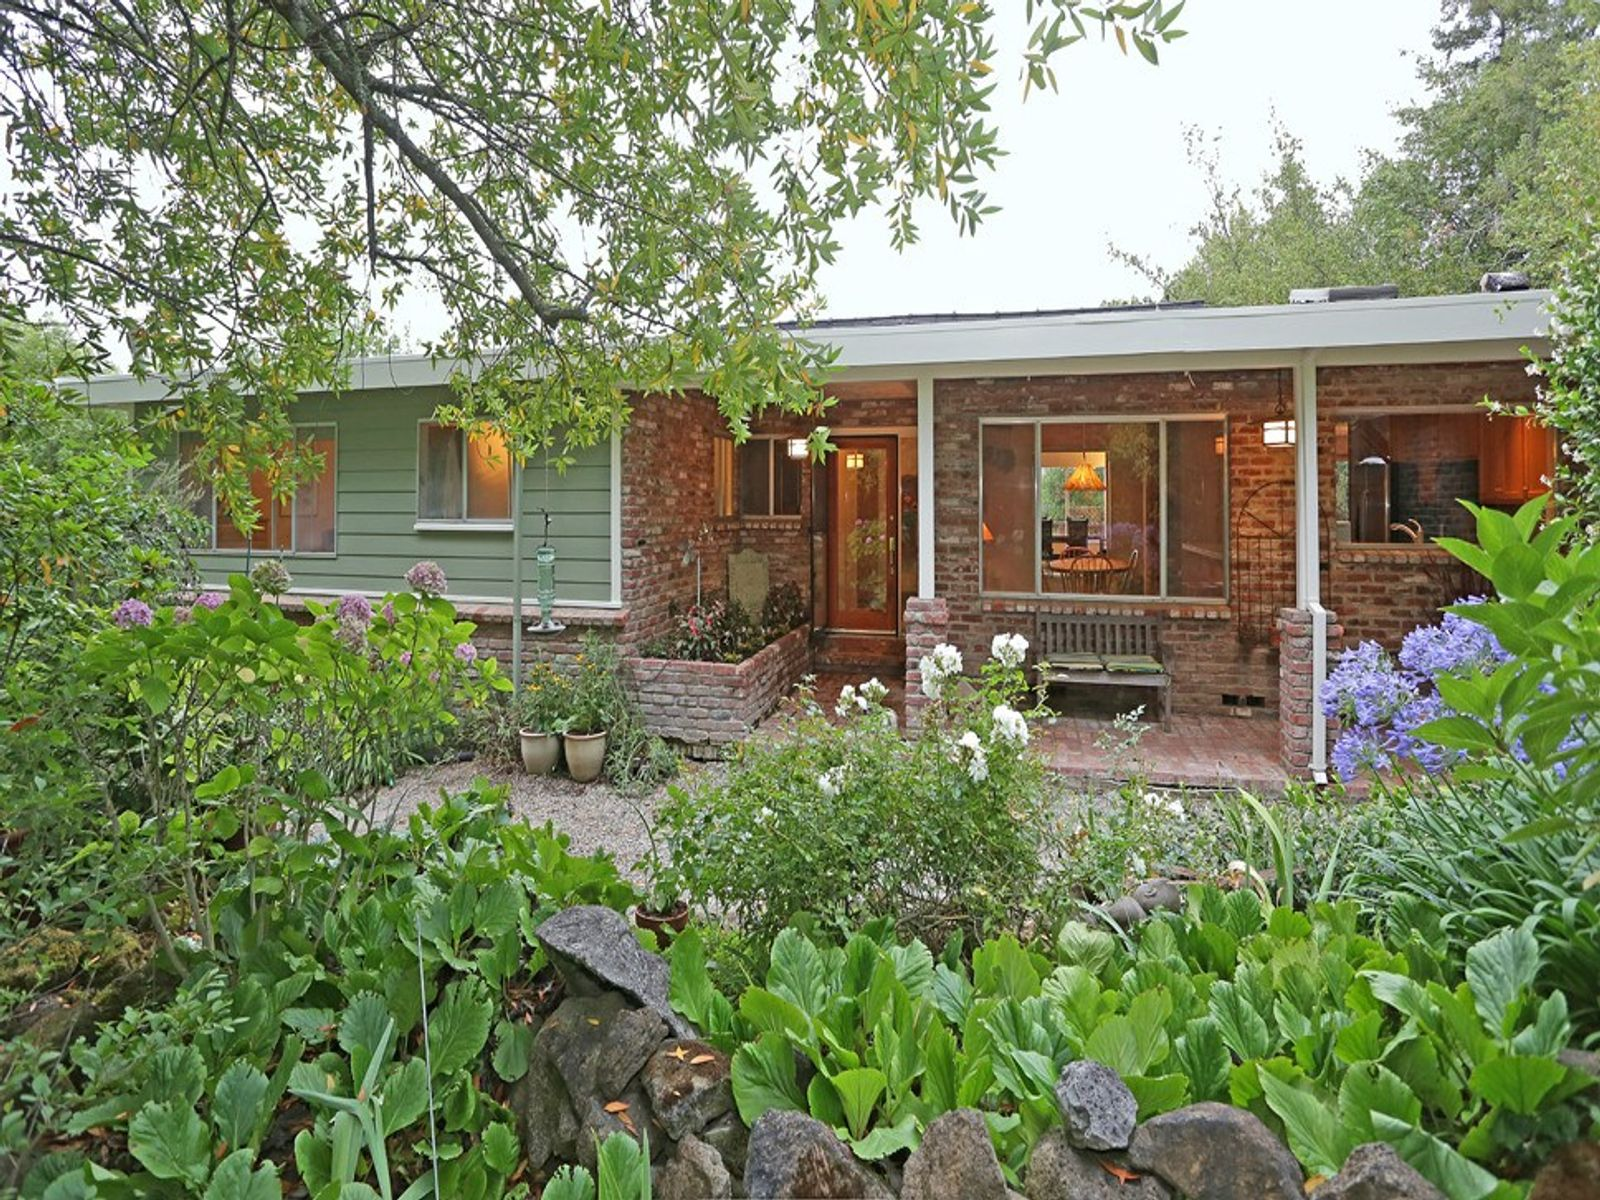 Romantic Hideaway , Penngrove CA Single Family Home - Sonoma - Napa Real Estate